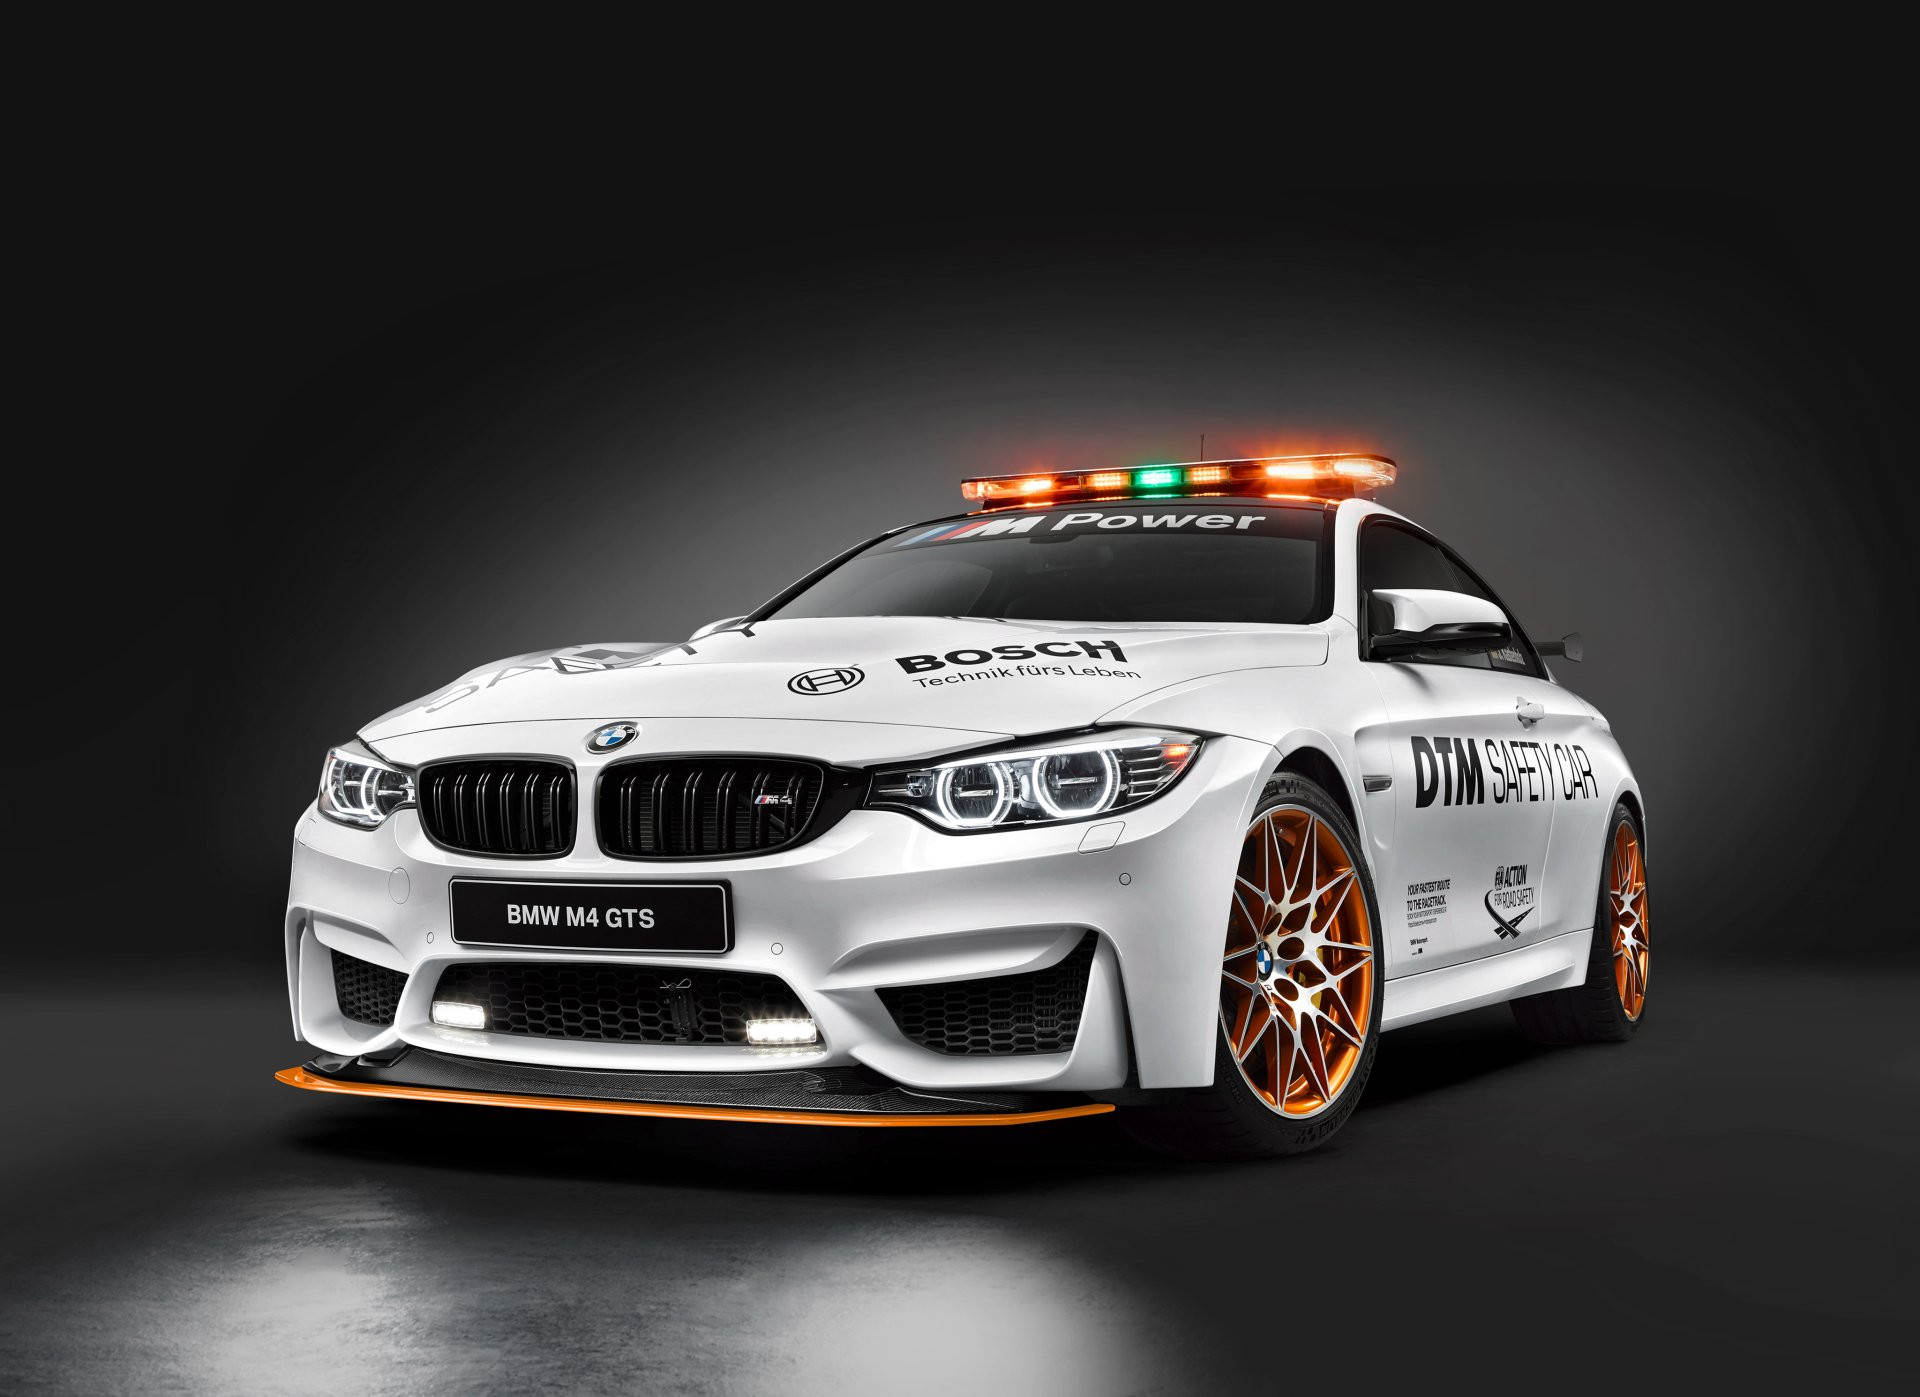 Vehicles - BMW M4  BMW M4 GTS Race Car Wallpaper